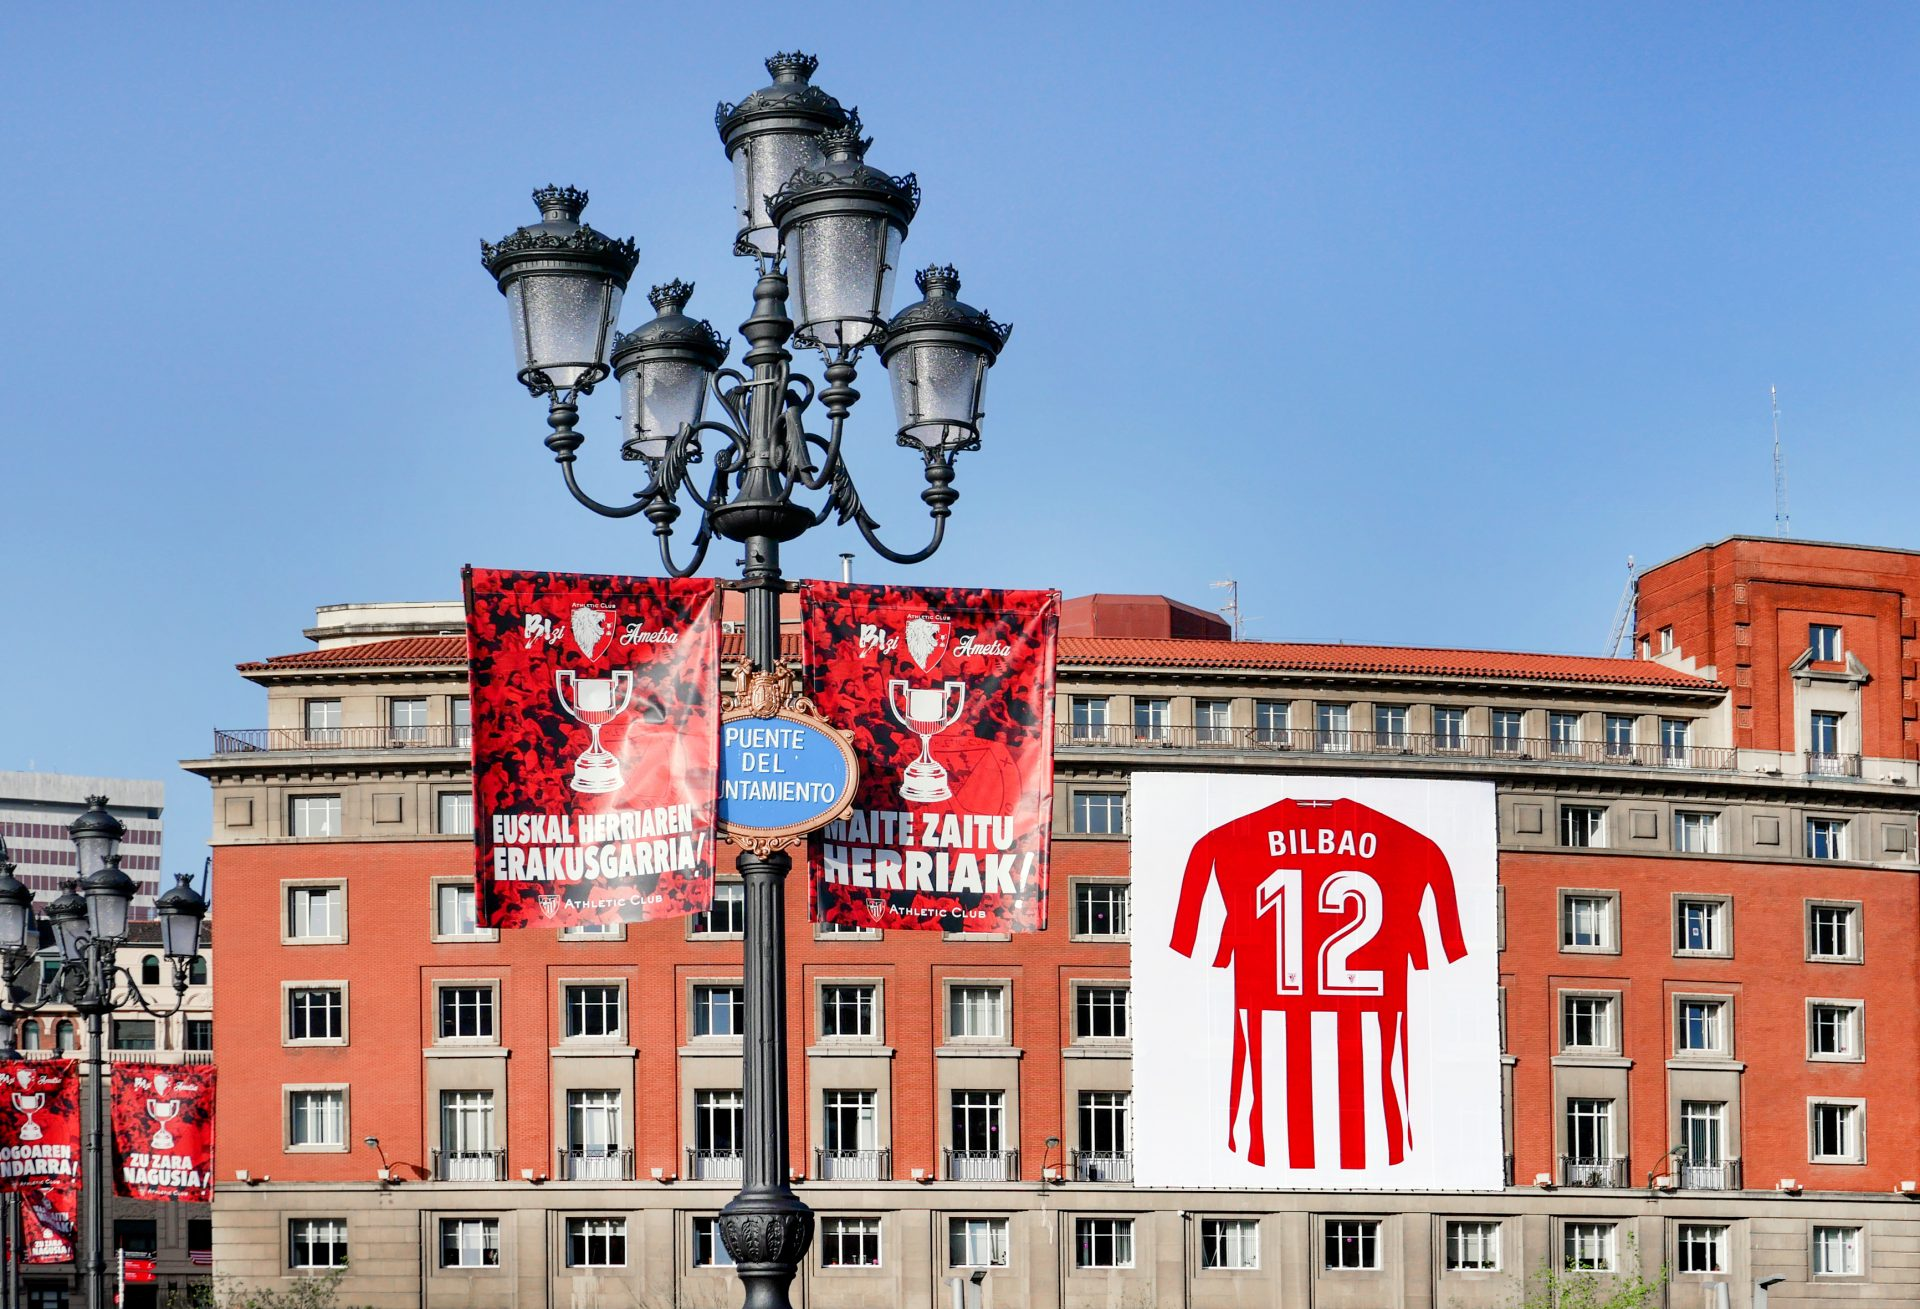 Bilbao and Biscay turn red and white for the Copa final